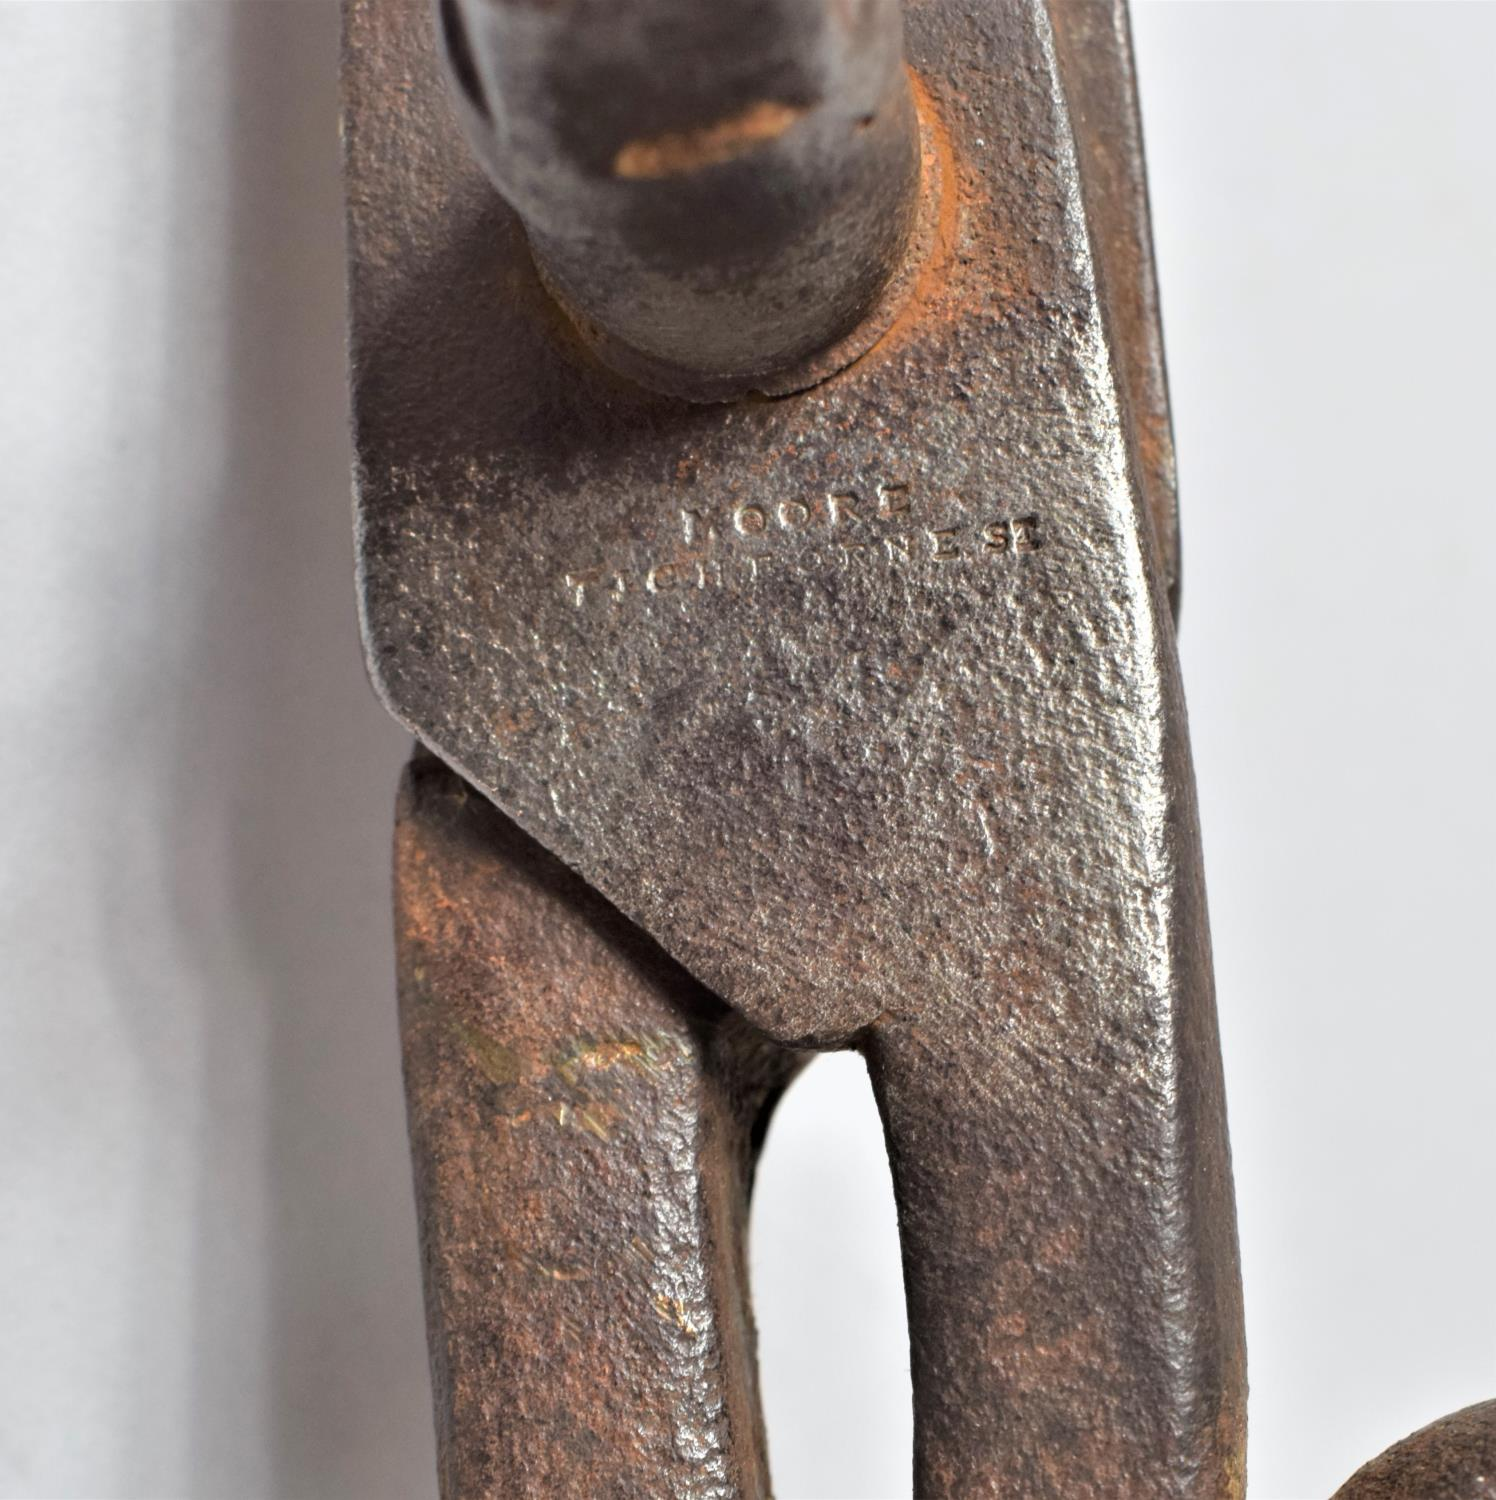 A Large Pair of Victorian Cast Iron Industrial Scissors by Moore, Tichborne St, 36.5cm Long - Image 2 of 5